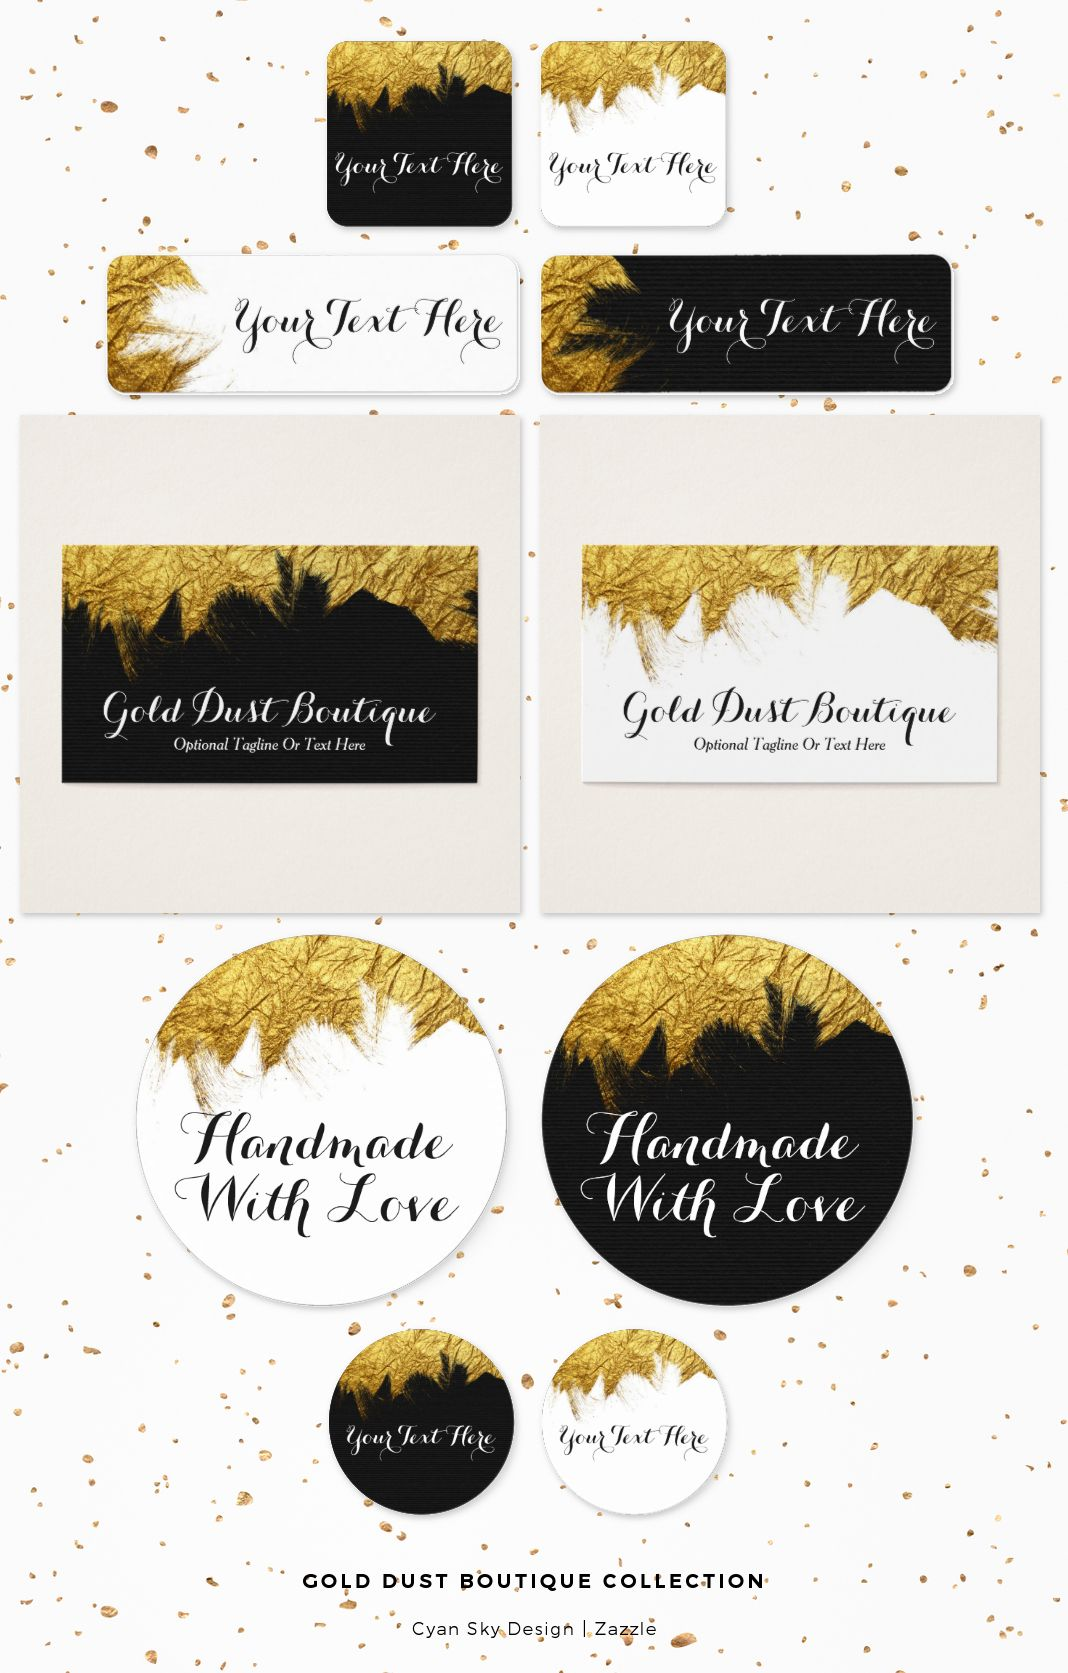 Gold Dust Boutique Collection: Faux gold foil - a bold impression for your small business branding! Bling your boutique with glamorous eye-catching gold dust. Bright, shiny, and full of texture. Versatile for many types of businesses! CyanSkyDesign on Zazzle.